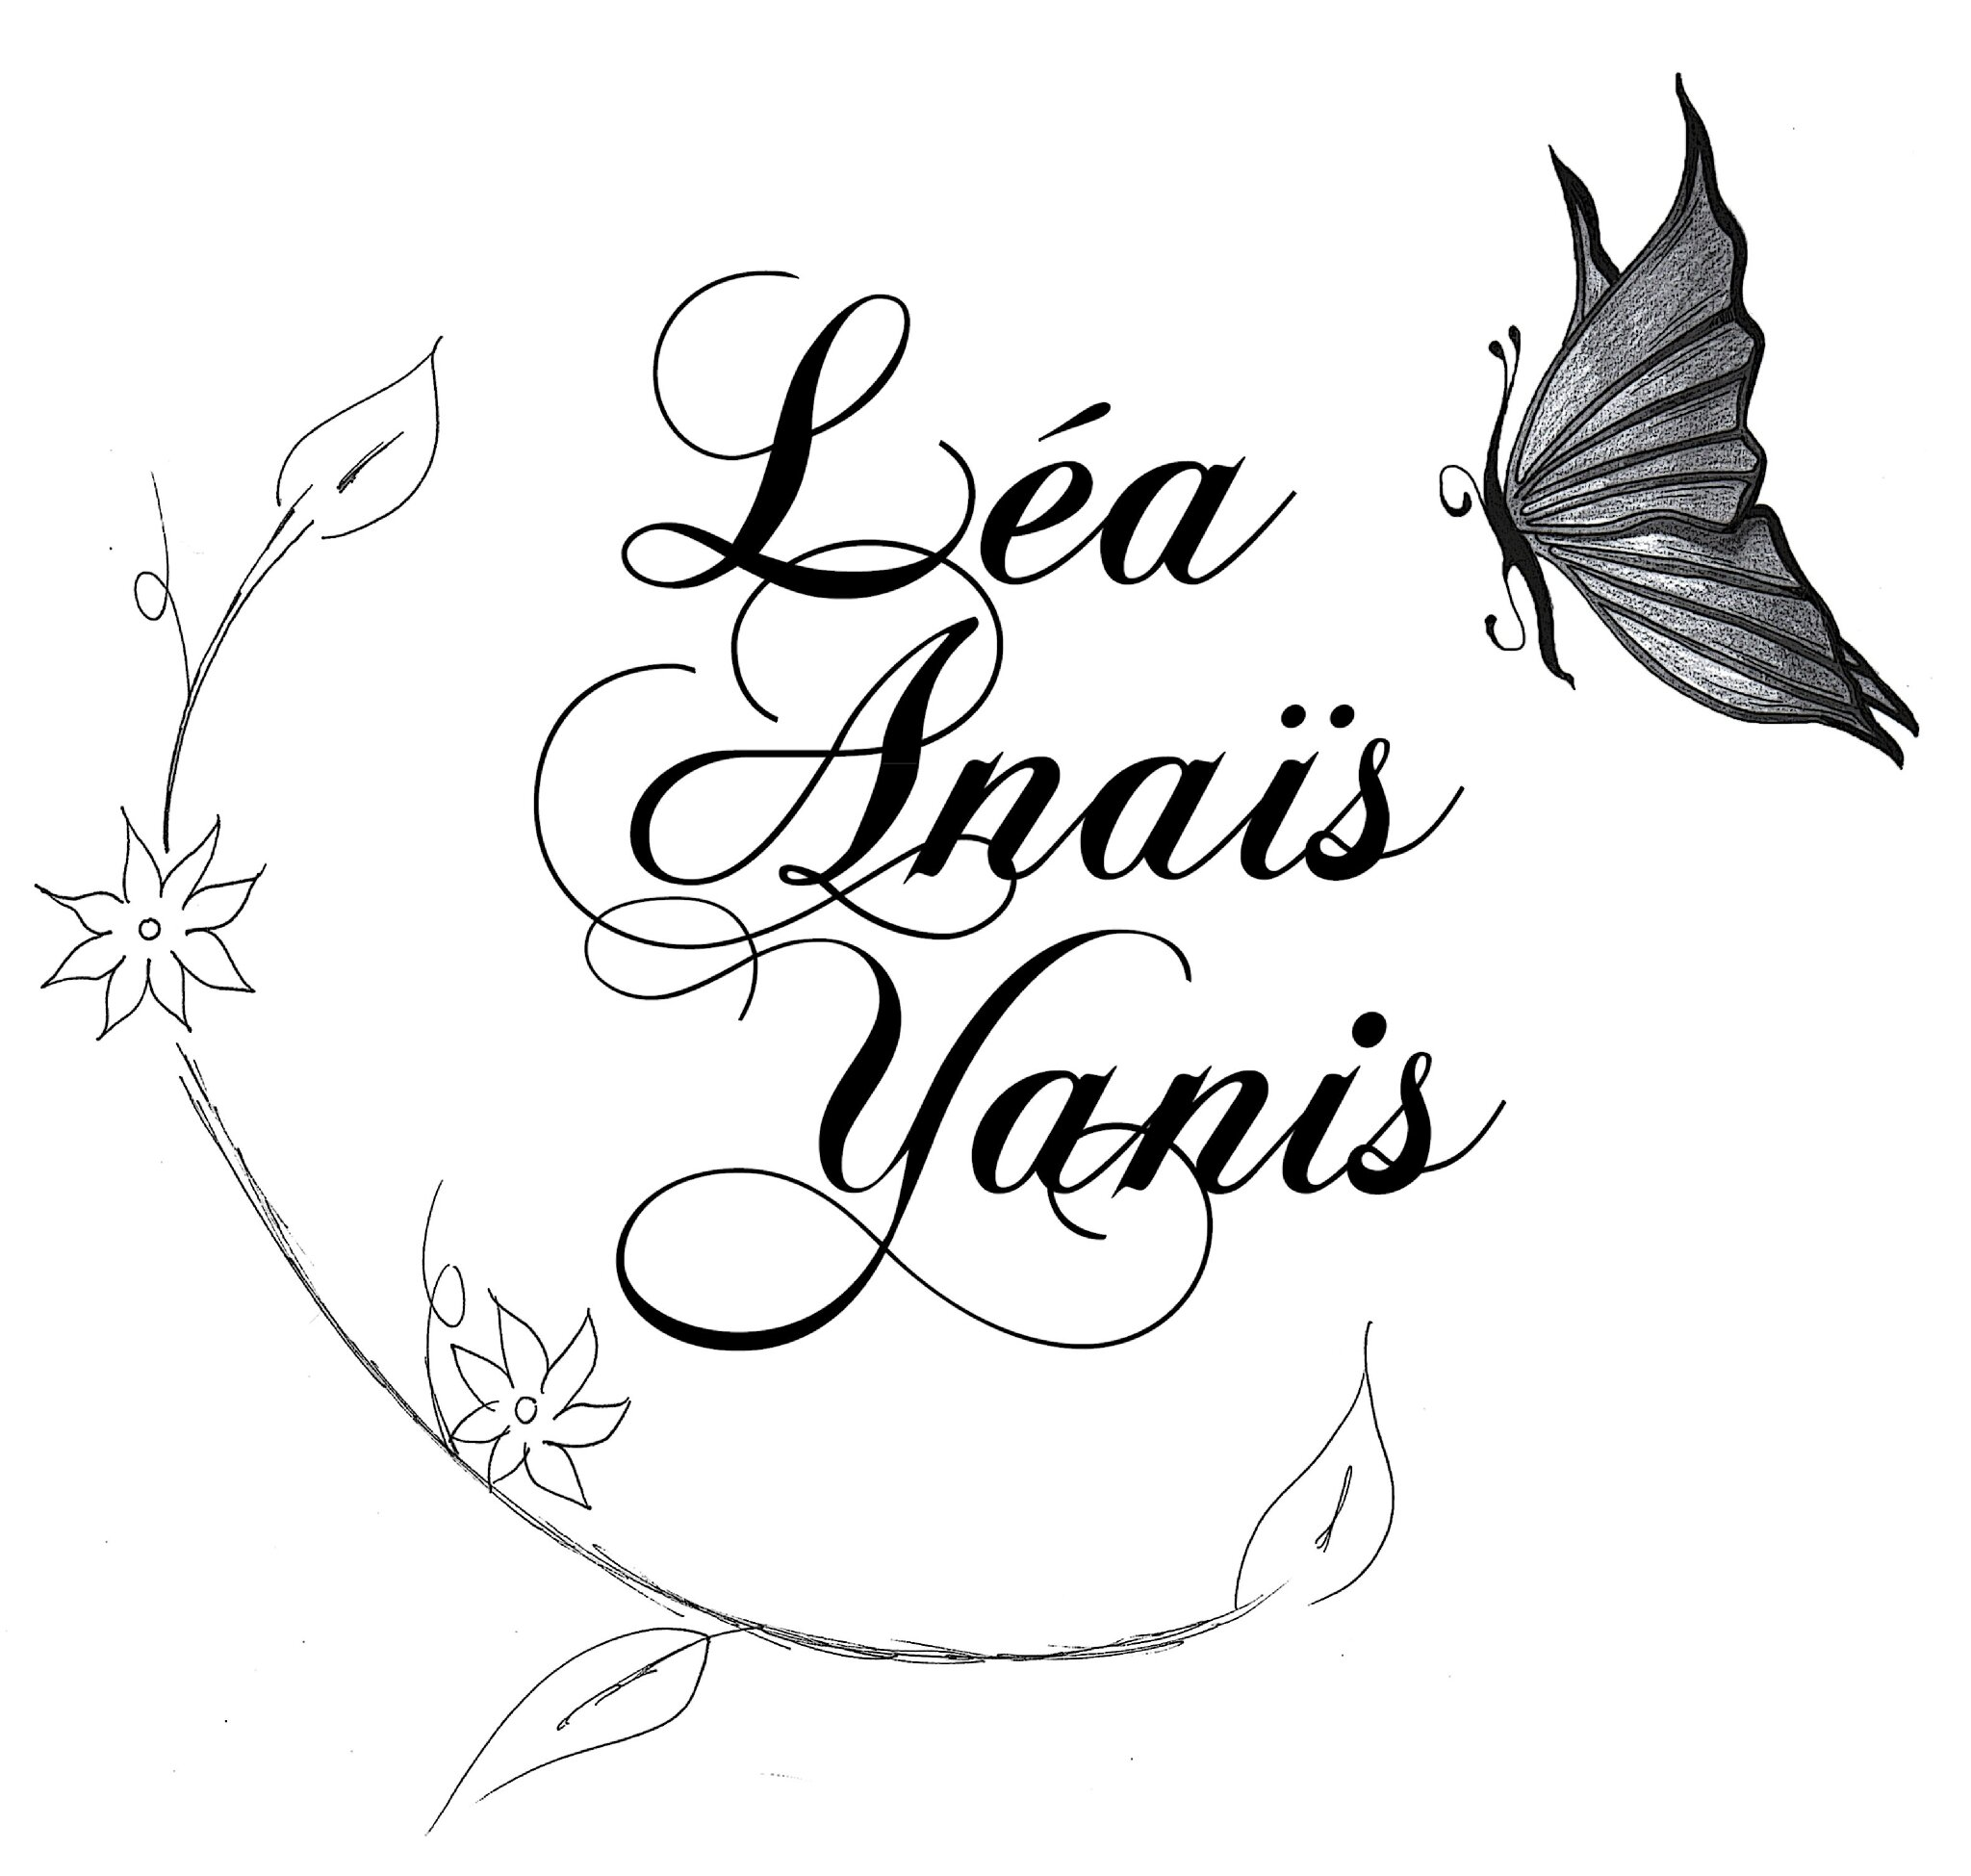 L Association Emily Calligraphy